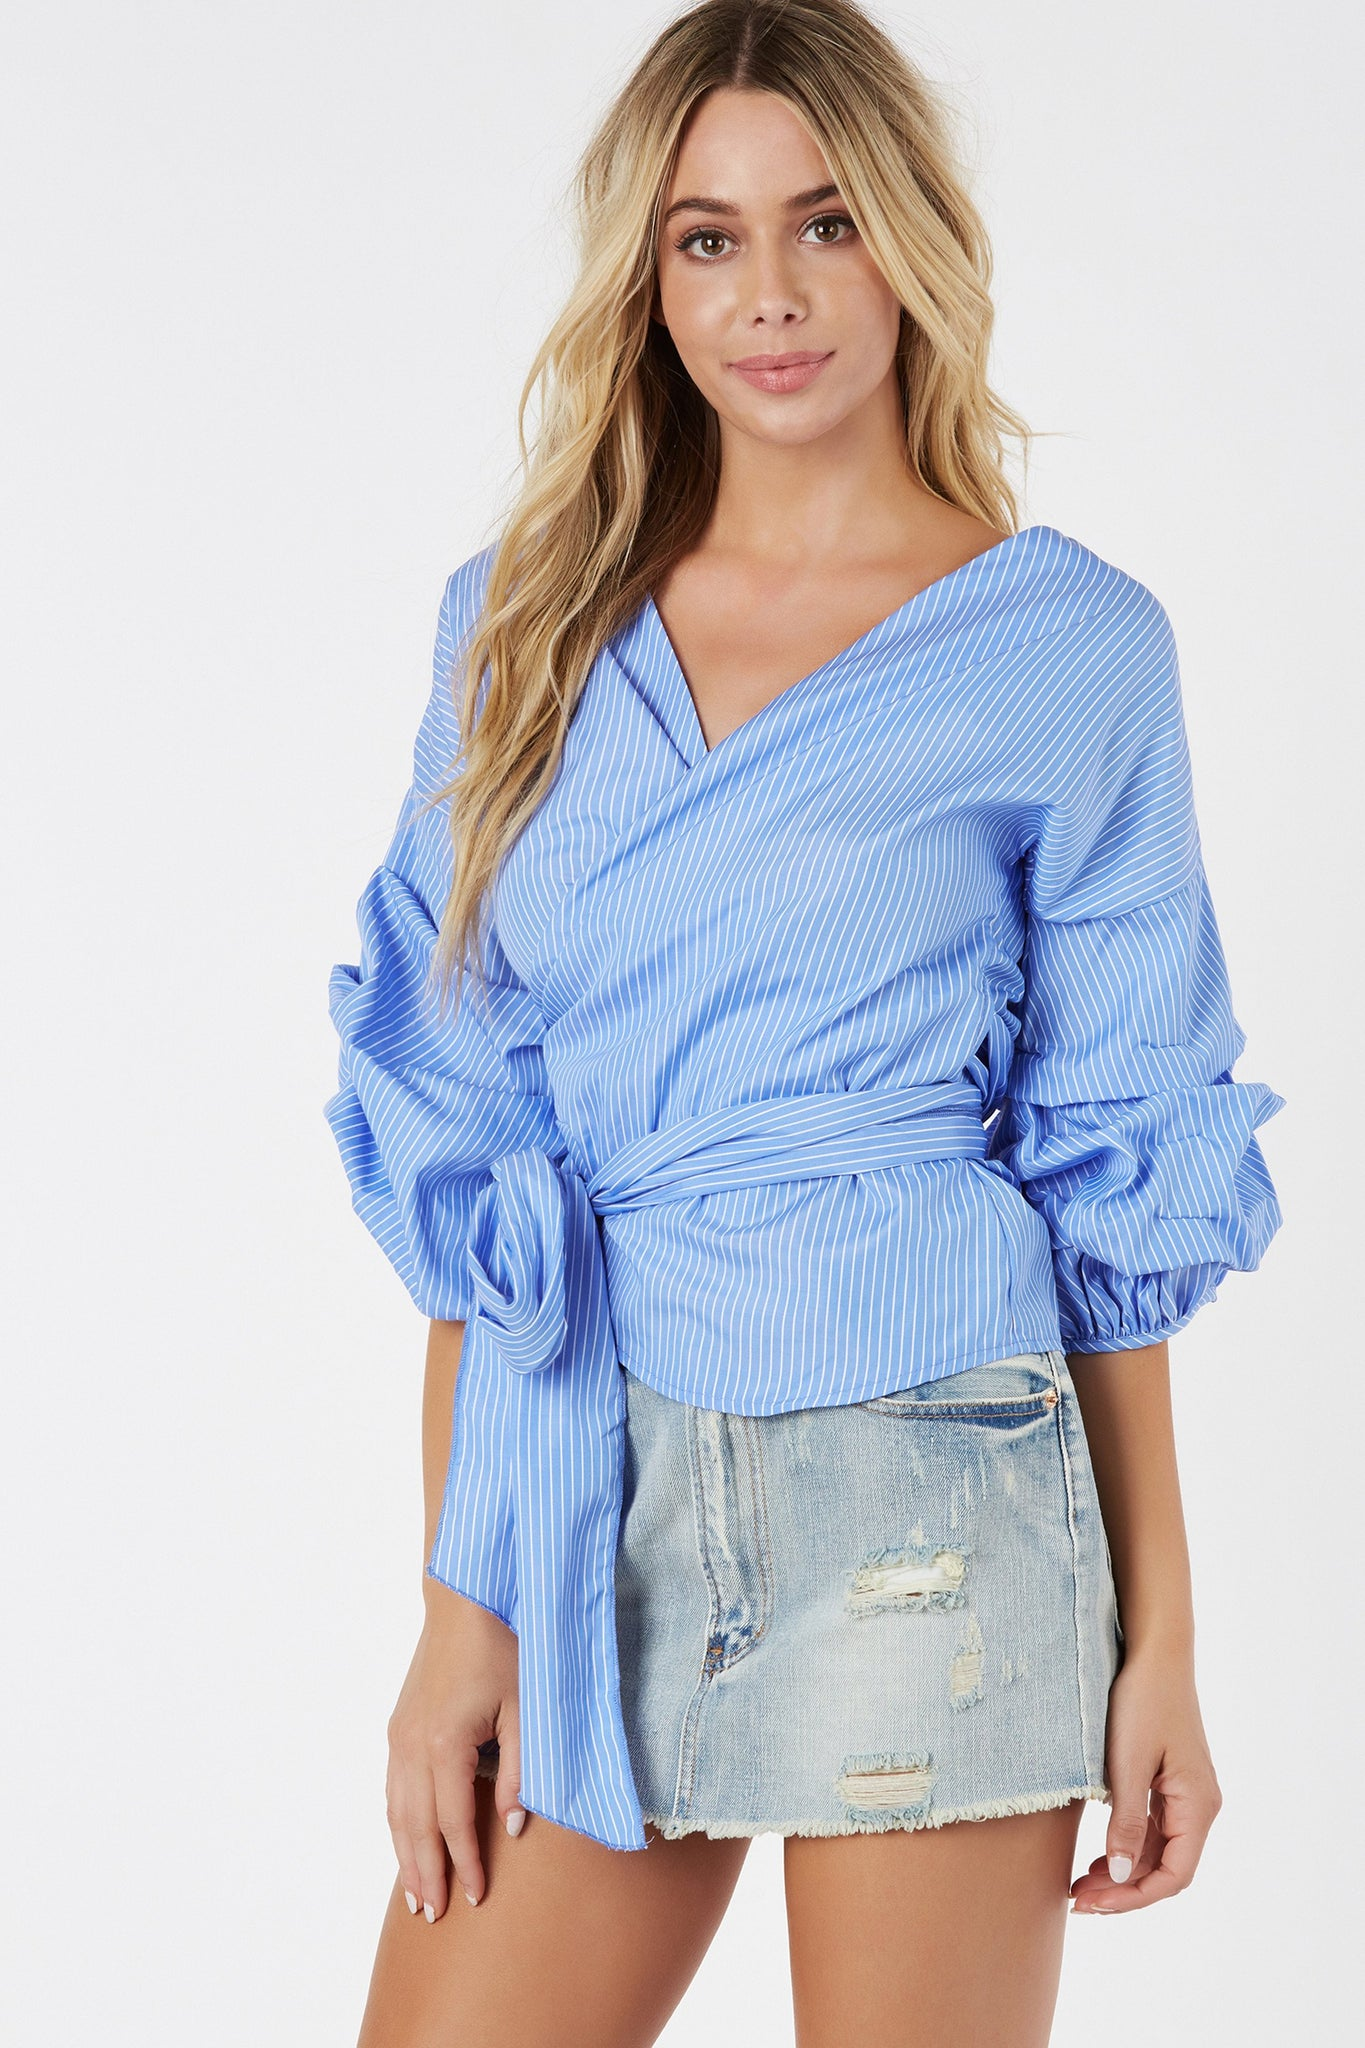 Chic V-neck wrap blouse with pin stripe pattern throughout and structured sleeves.